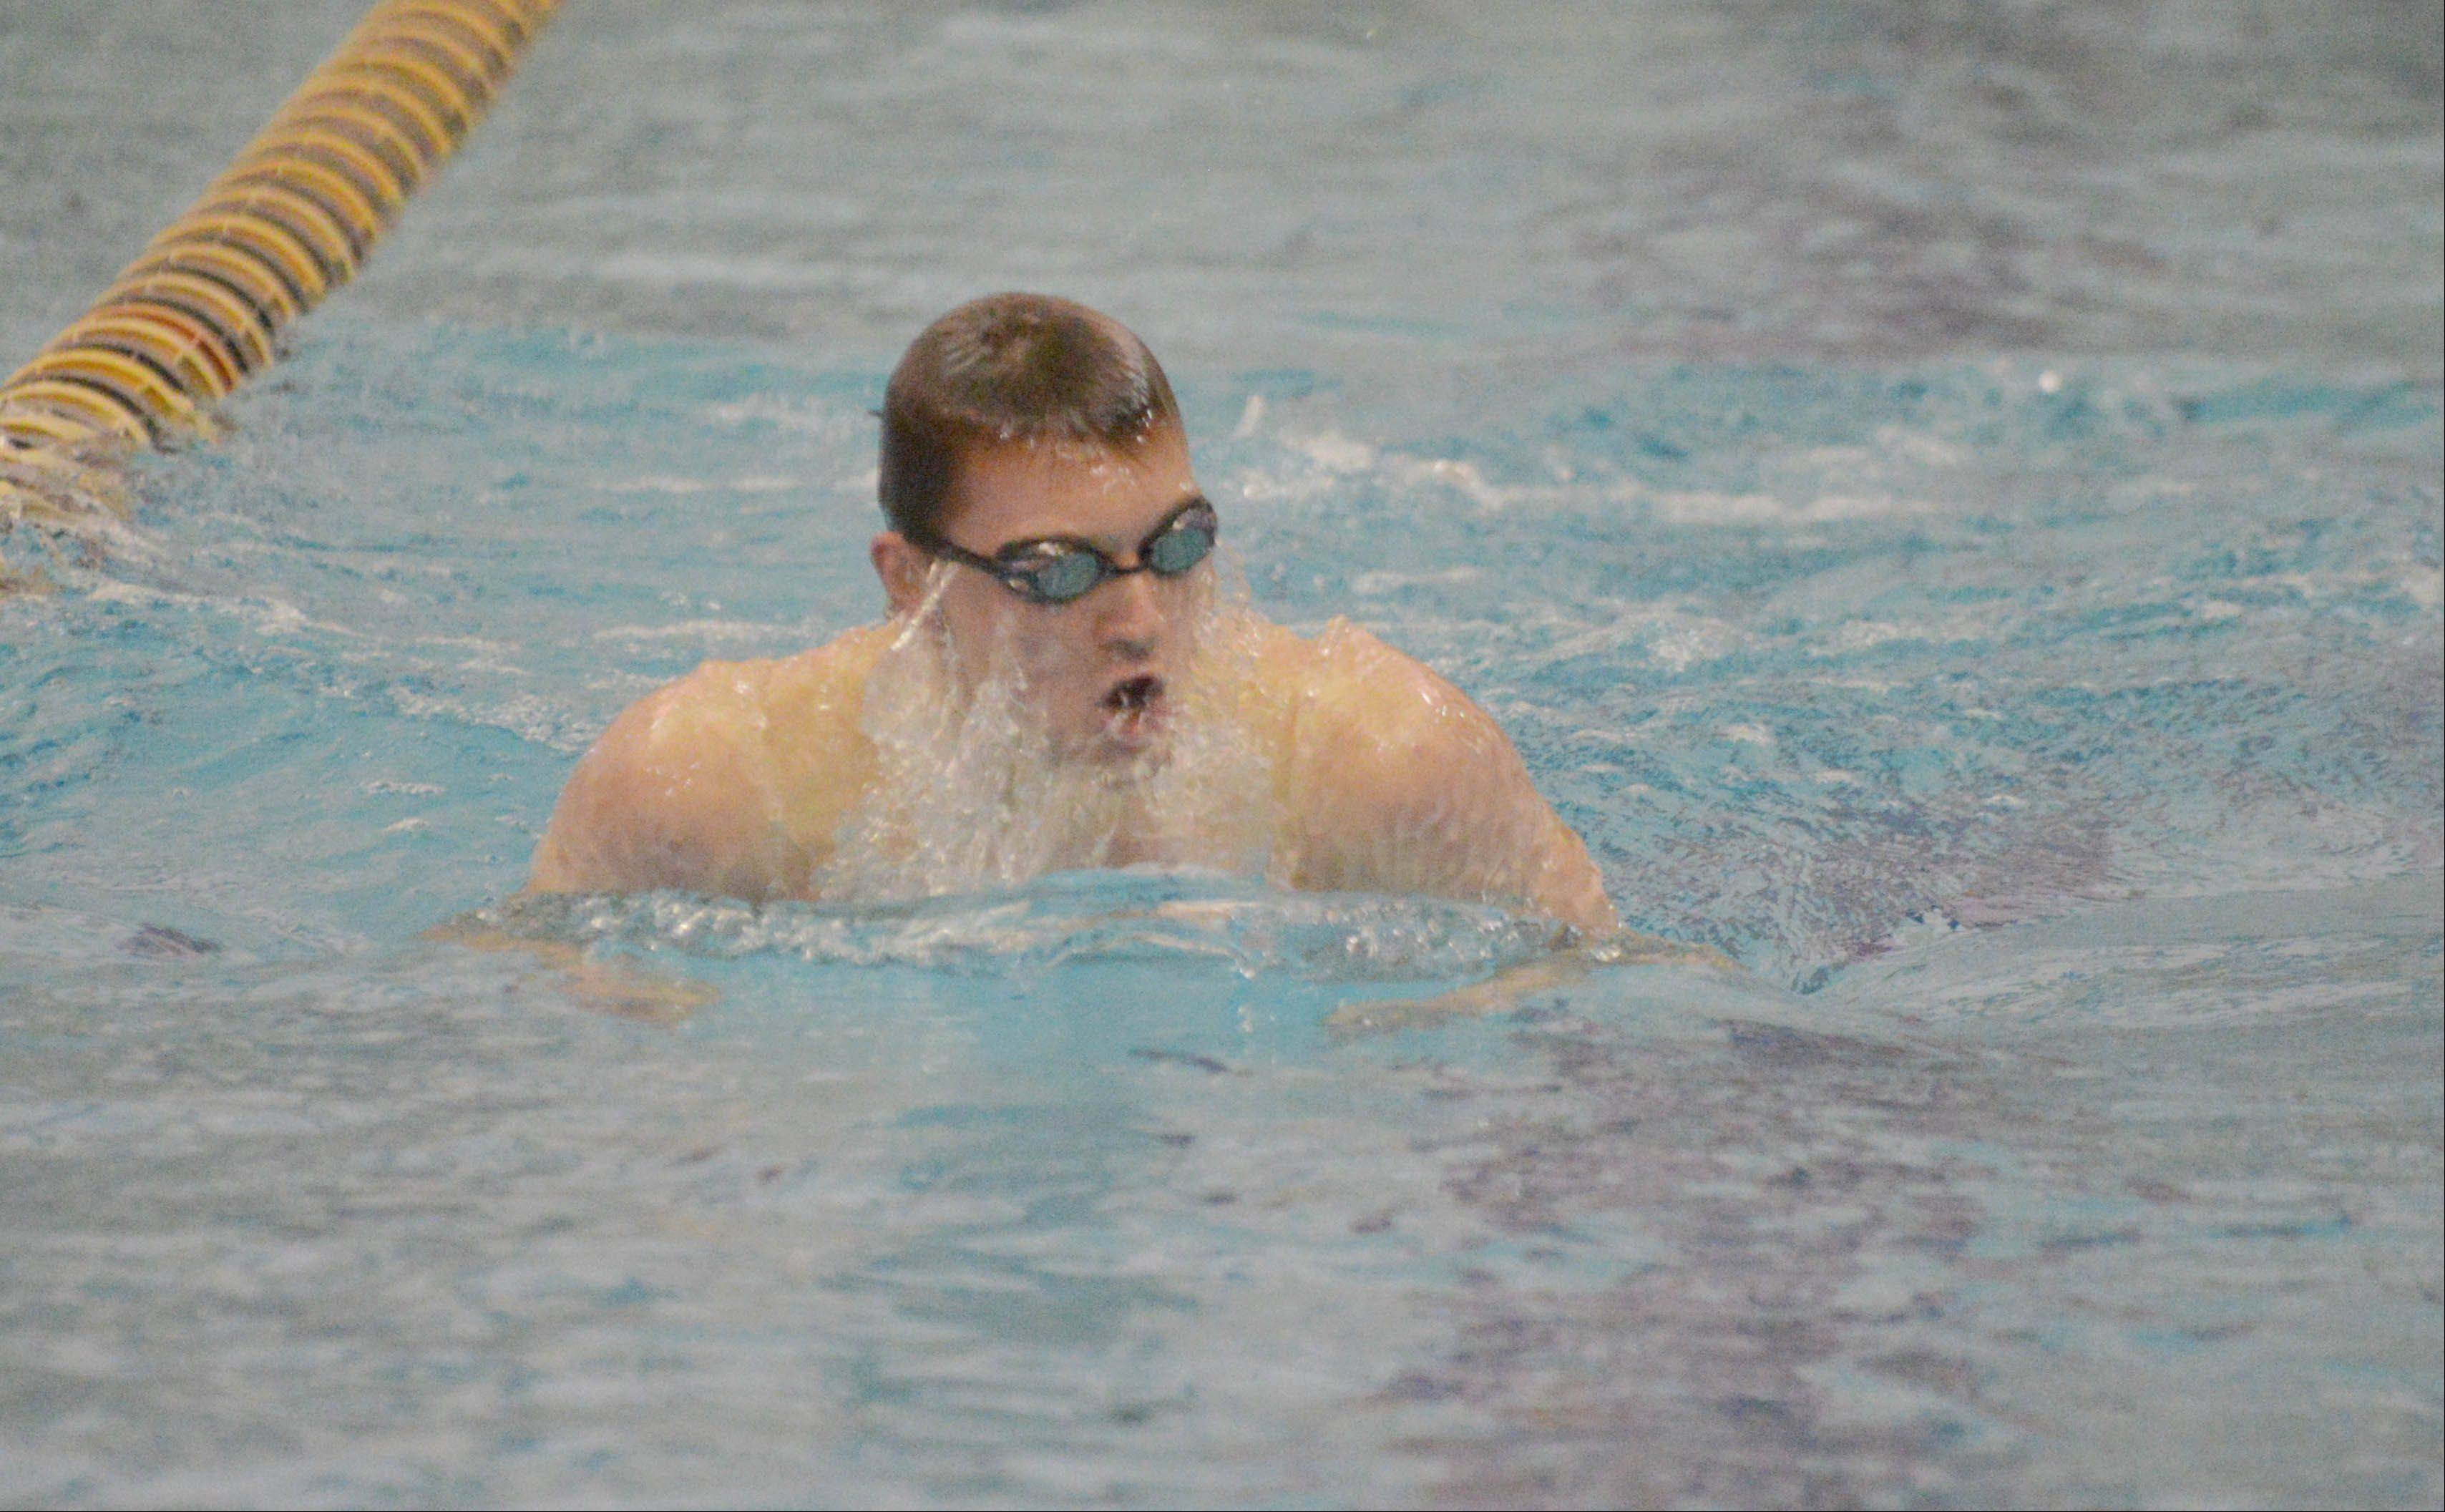 Connor Lamb swims the 200 IM during the Neuqua Valley boys swimming invitational Saturday.